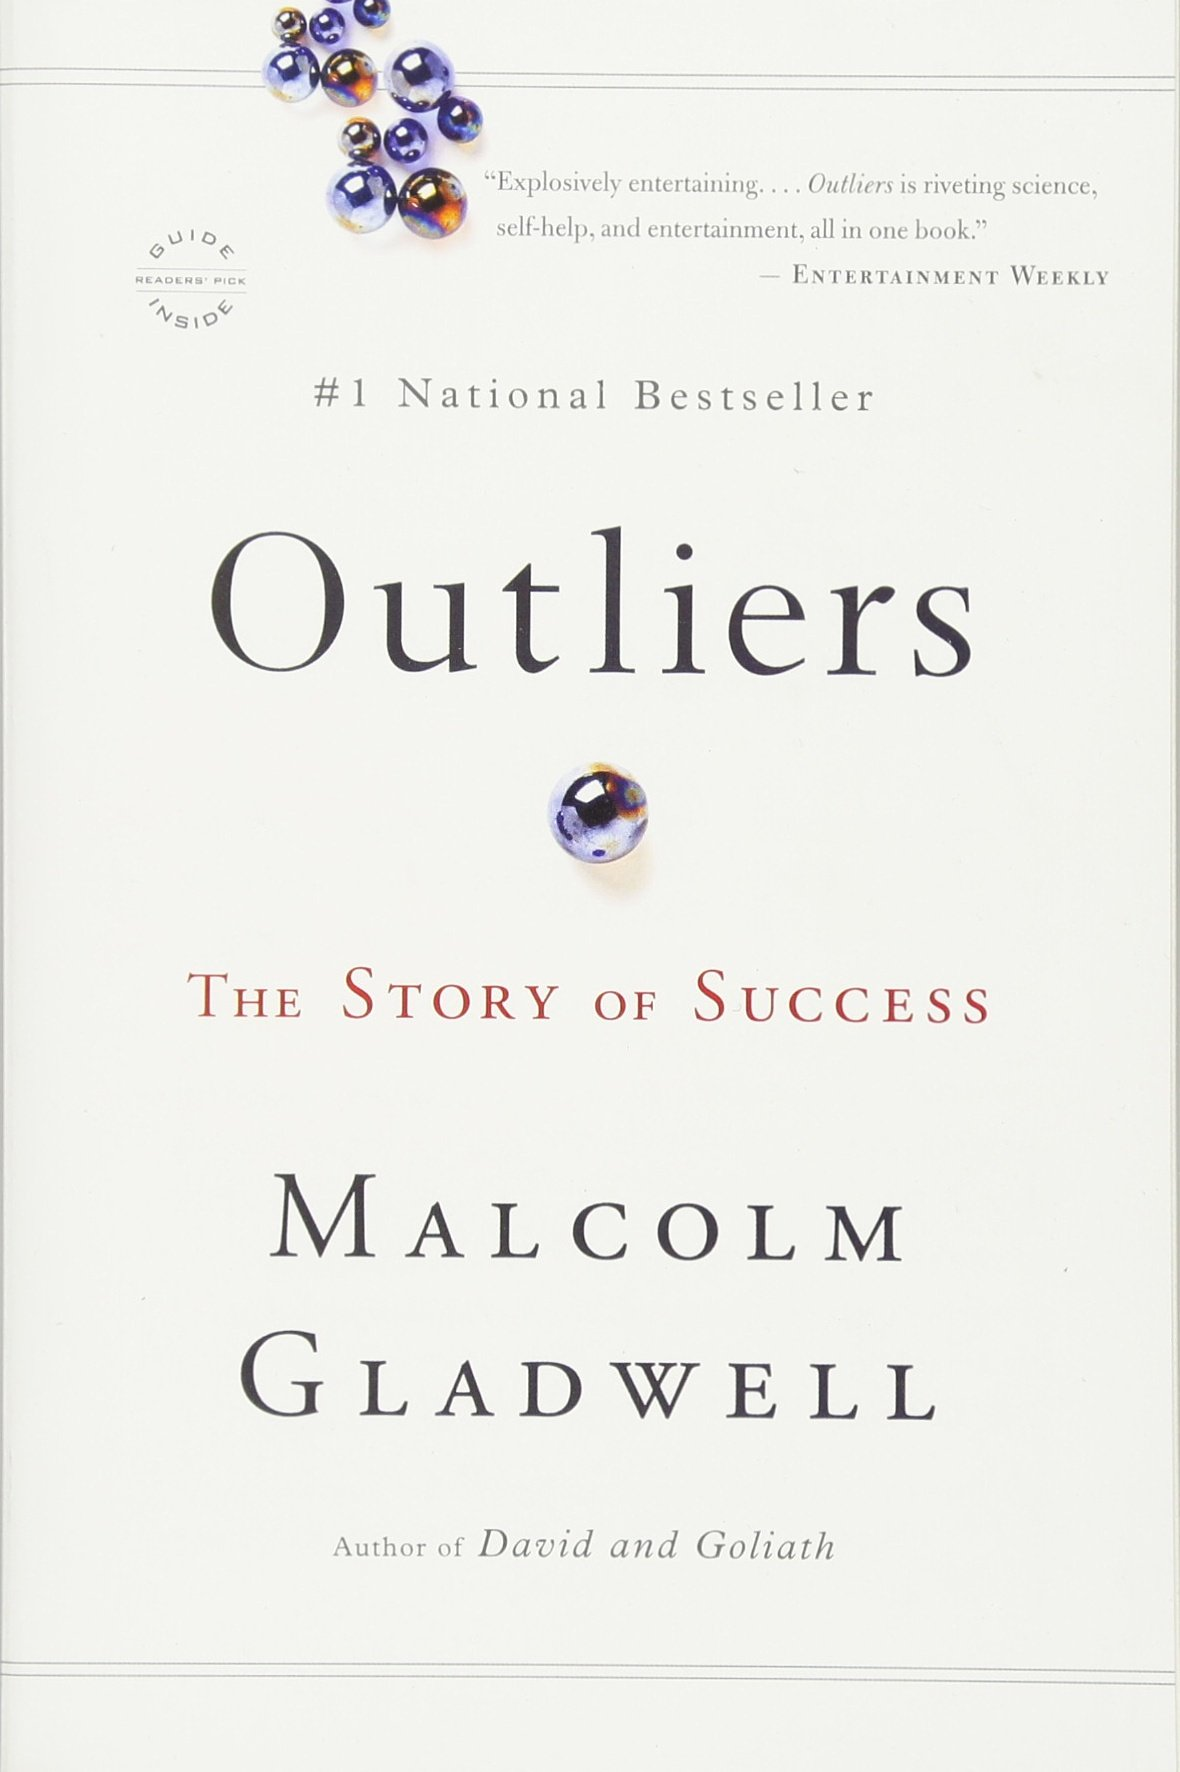 "Cover image of the book ""Outliers"" by Malcolm Gladwell, author of ""David and Goliath."" The cover features several blue and orange-tinted marbles on a beige background. Additional text reads, ""Readers' Pick Guide Inside"" and ""#1 National Bestseller."" A testimonial at the top reads, ""Explosively entertaining...""Outliers"" is riveting science, self-help, all in one book."" - Entertainment Weekly"